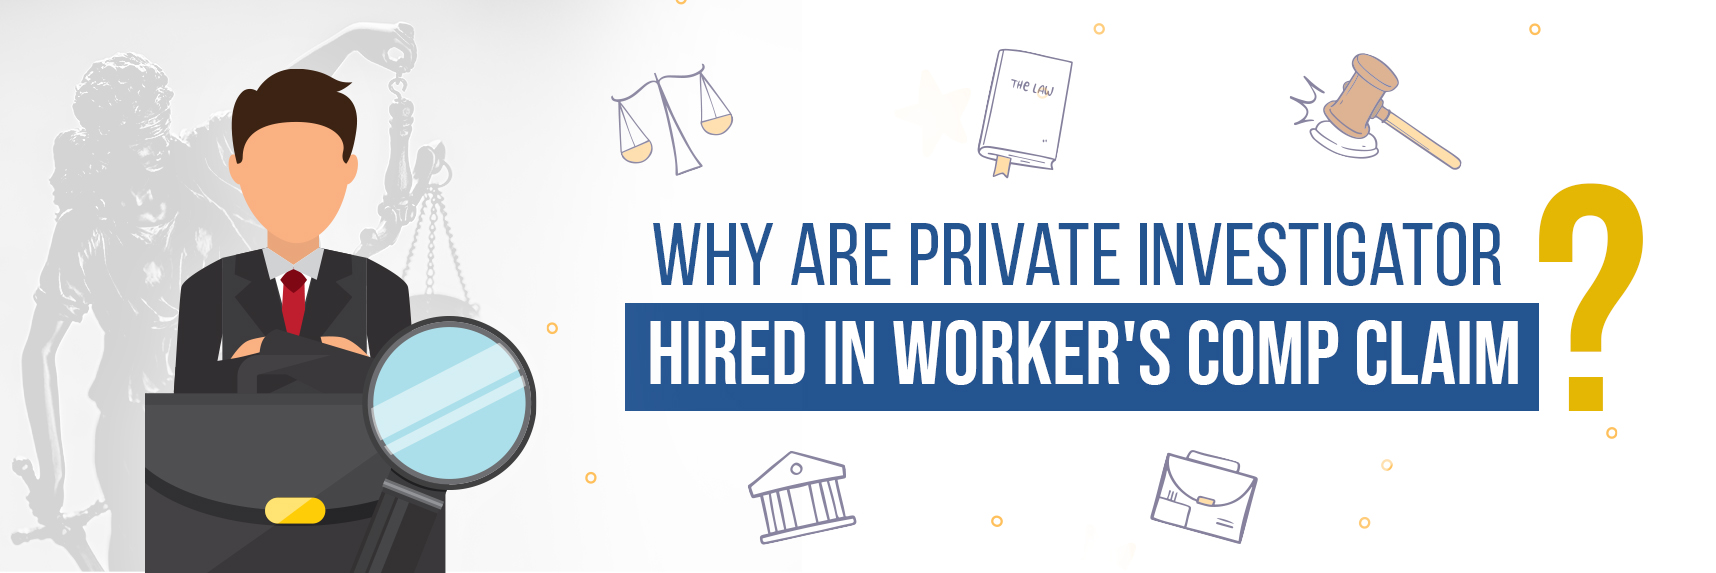 Why are Private Investigator hired in Worker's comp claim?